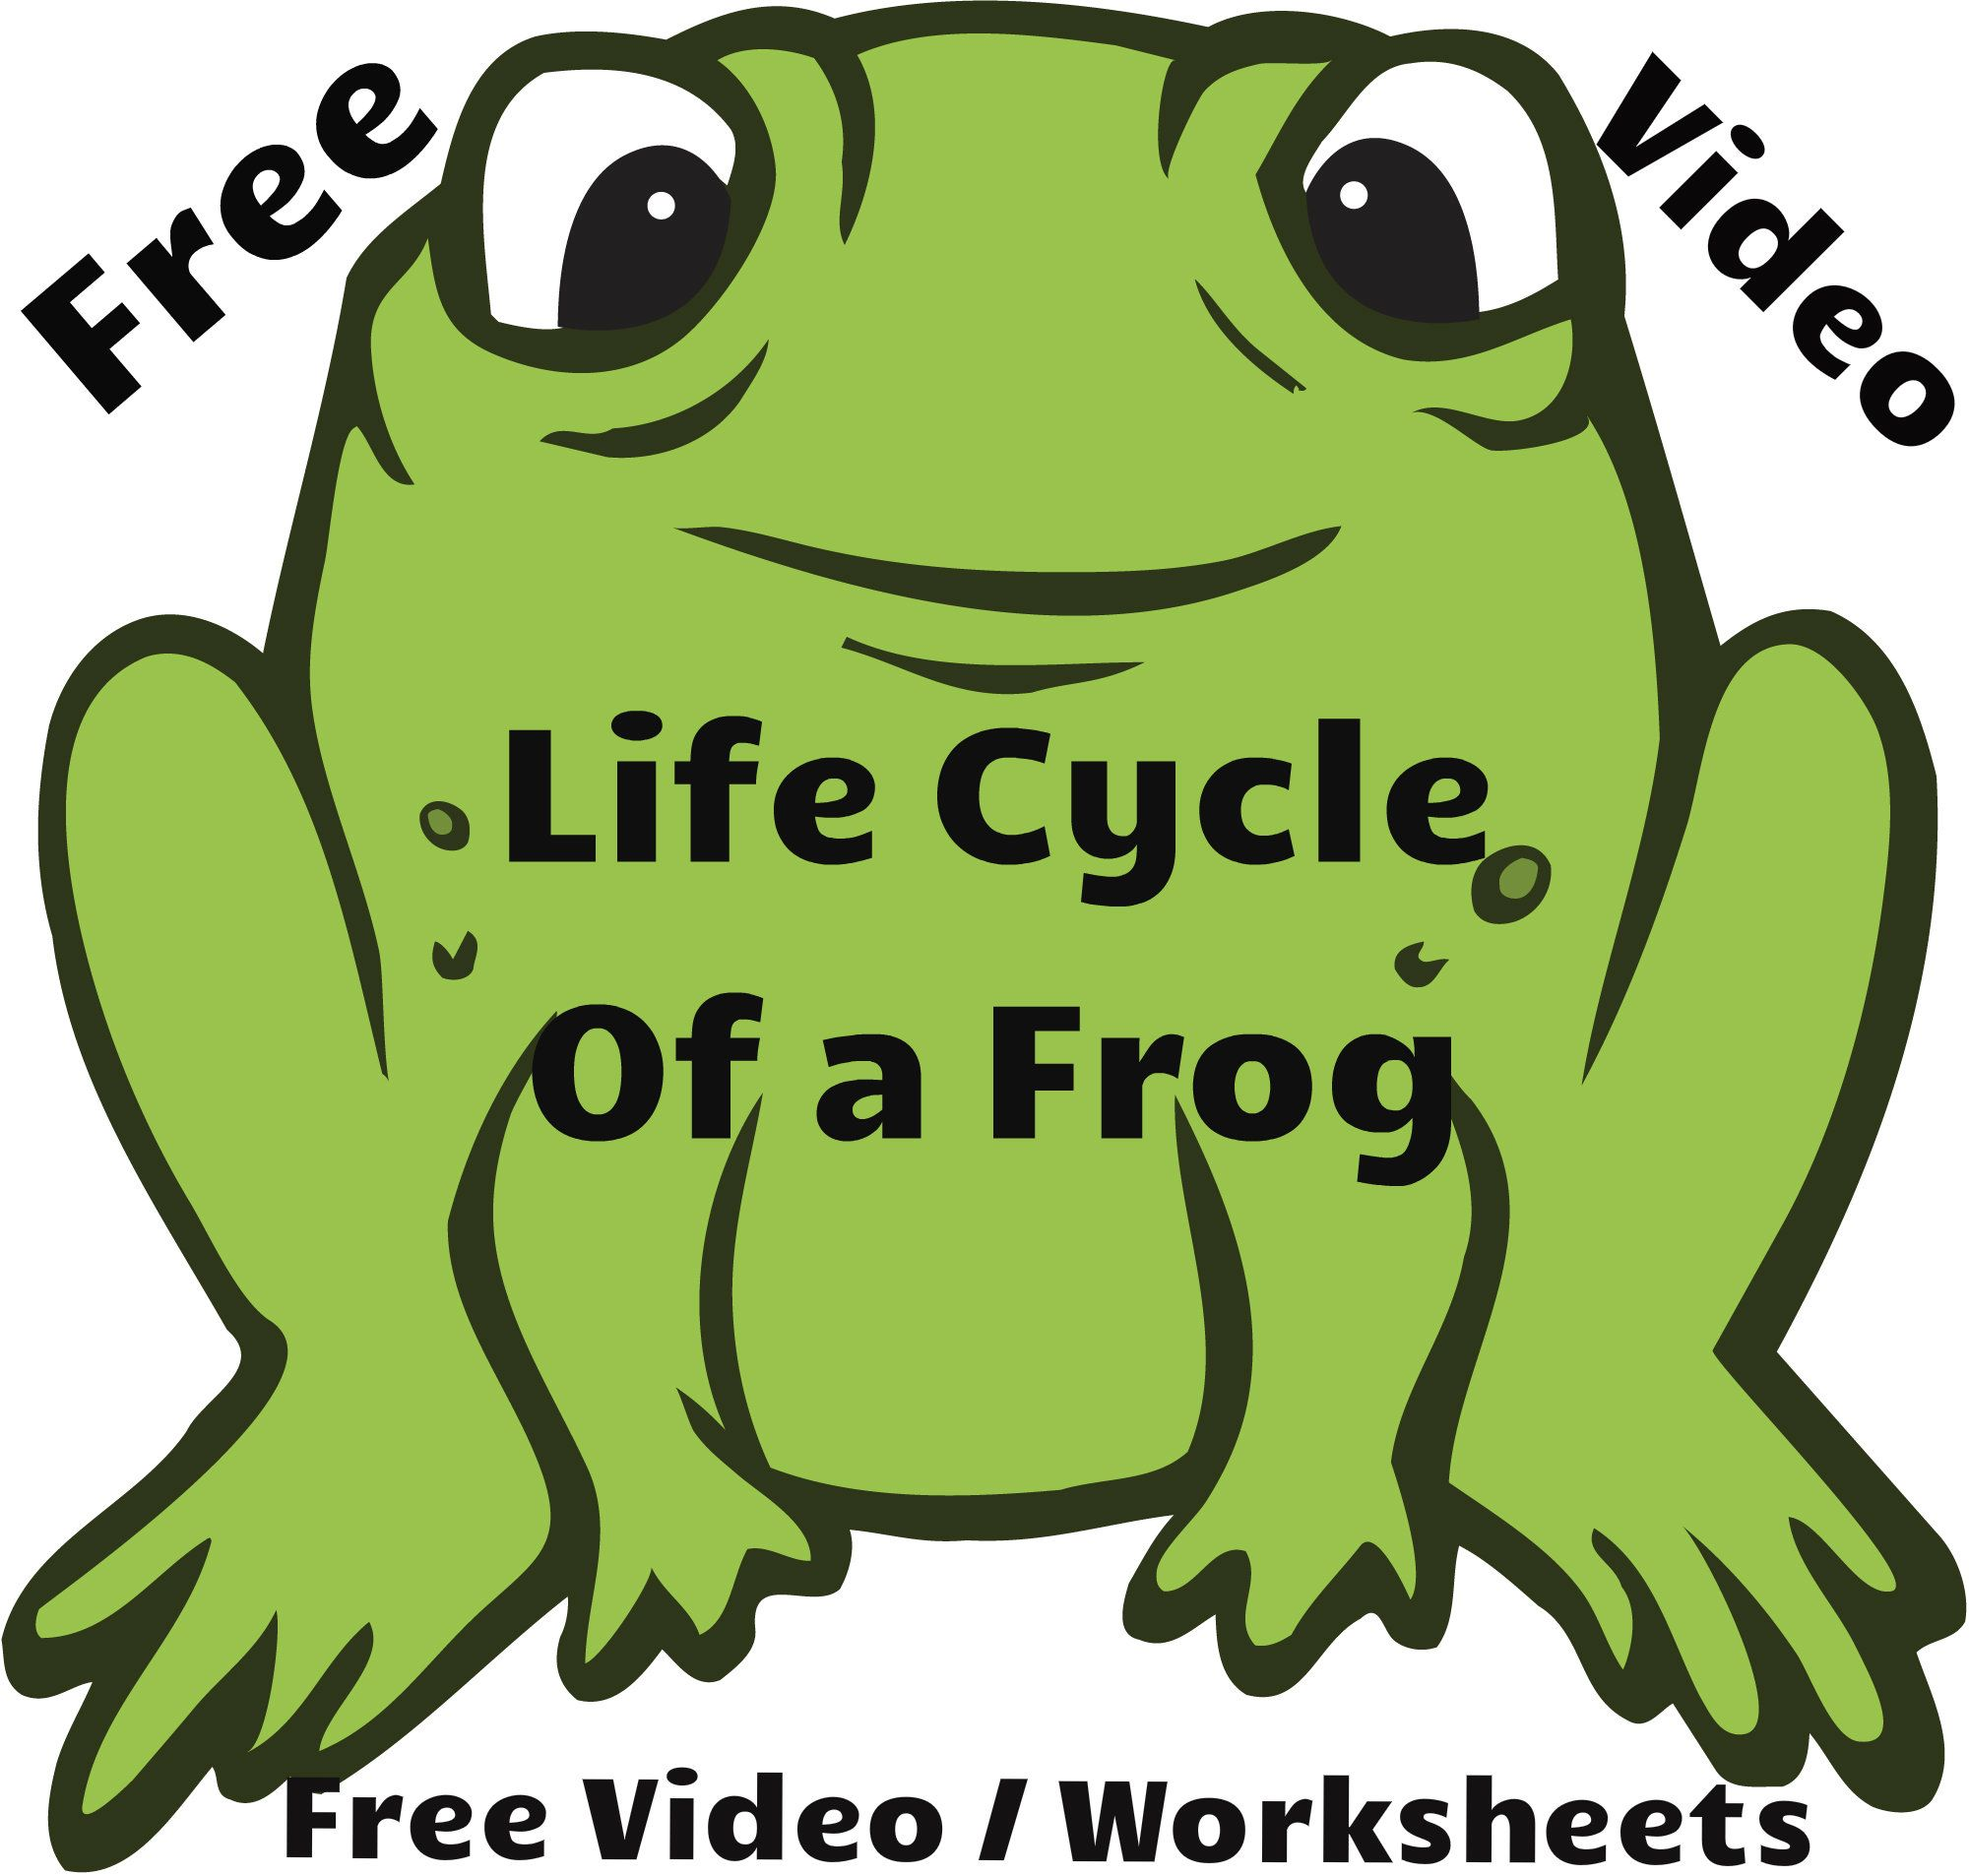 Free Video Lesson Life Cycle Of A Frog Along With The Video I Have Also Linked The Frog Life